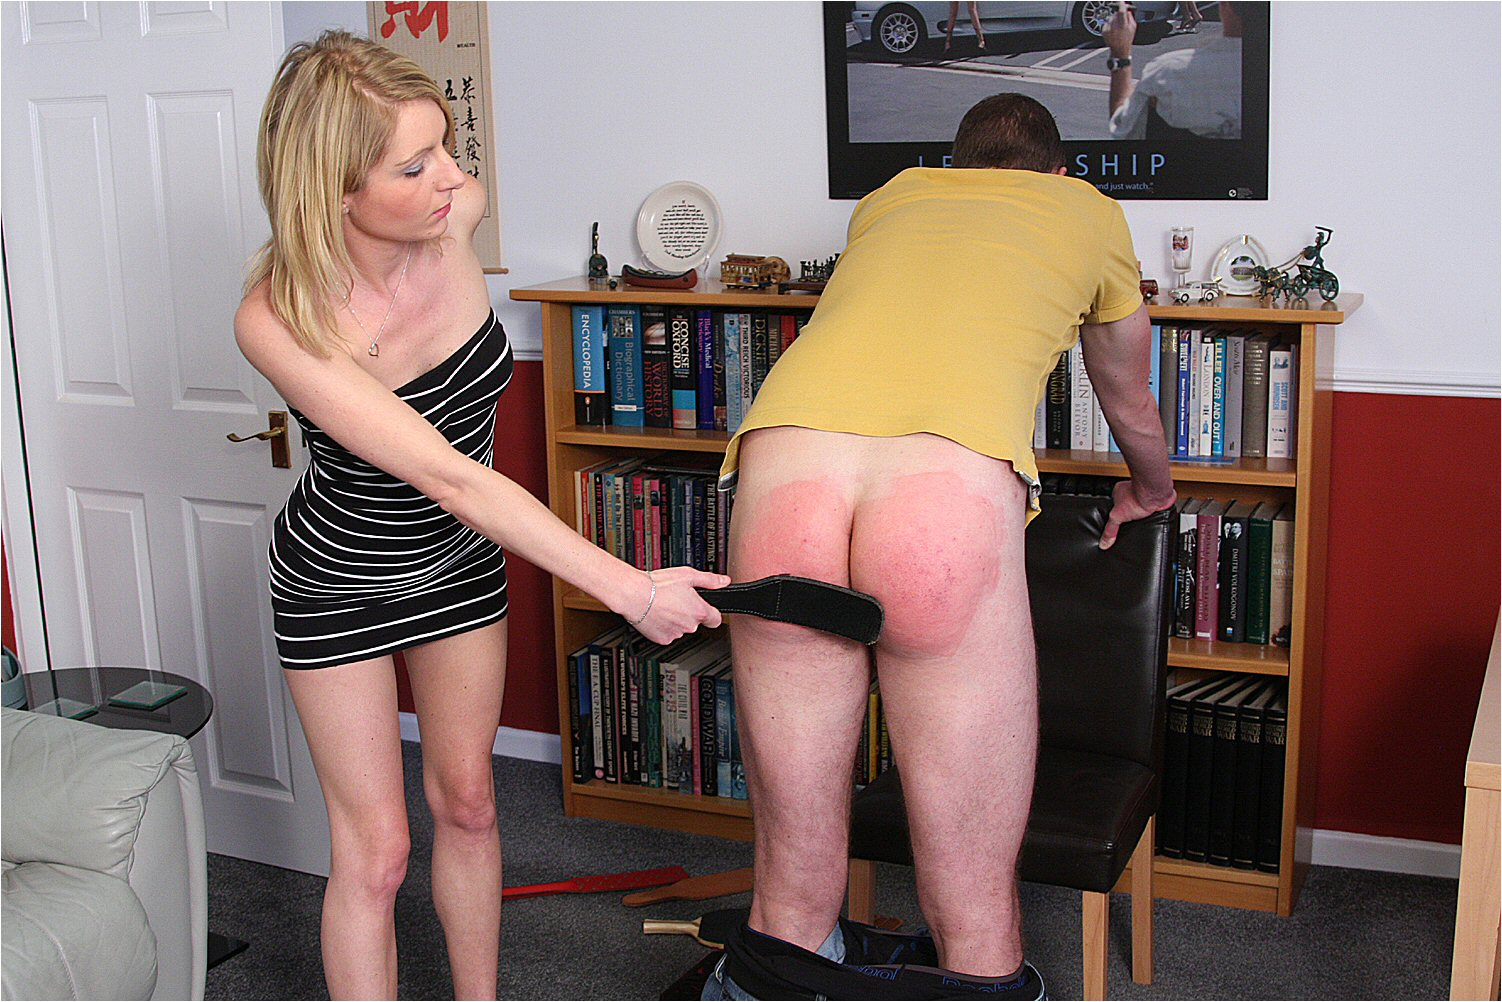 Create man cane spank process